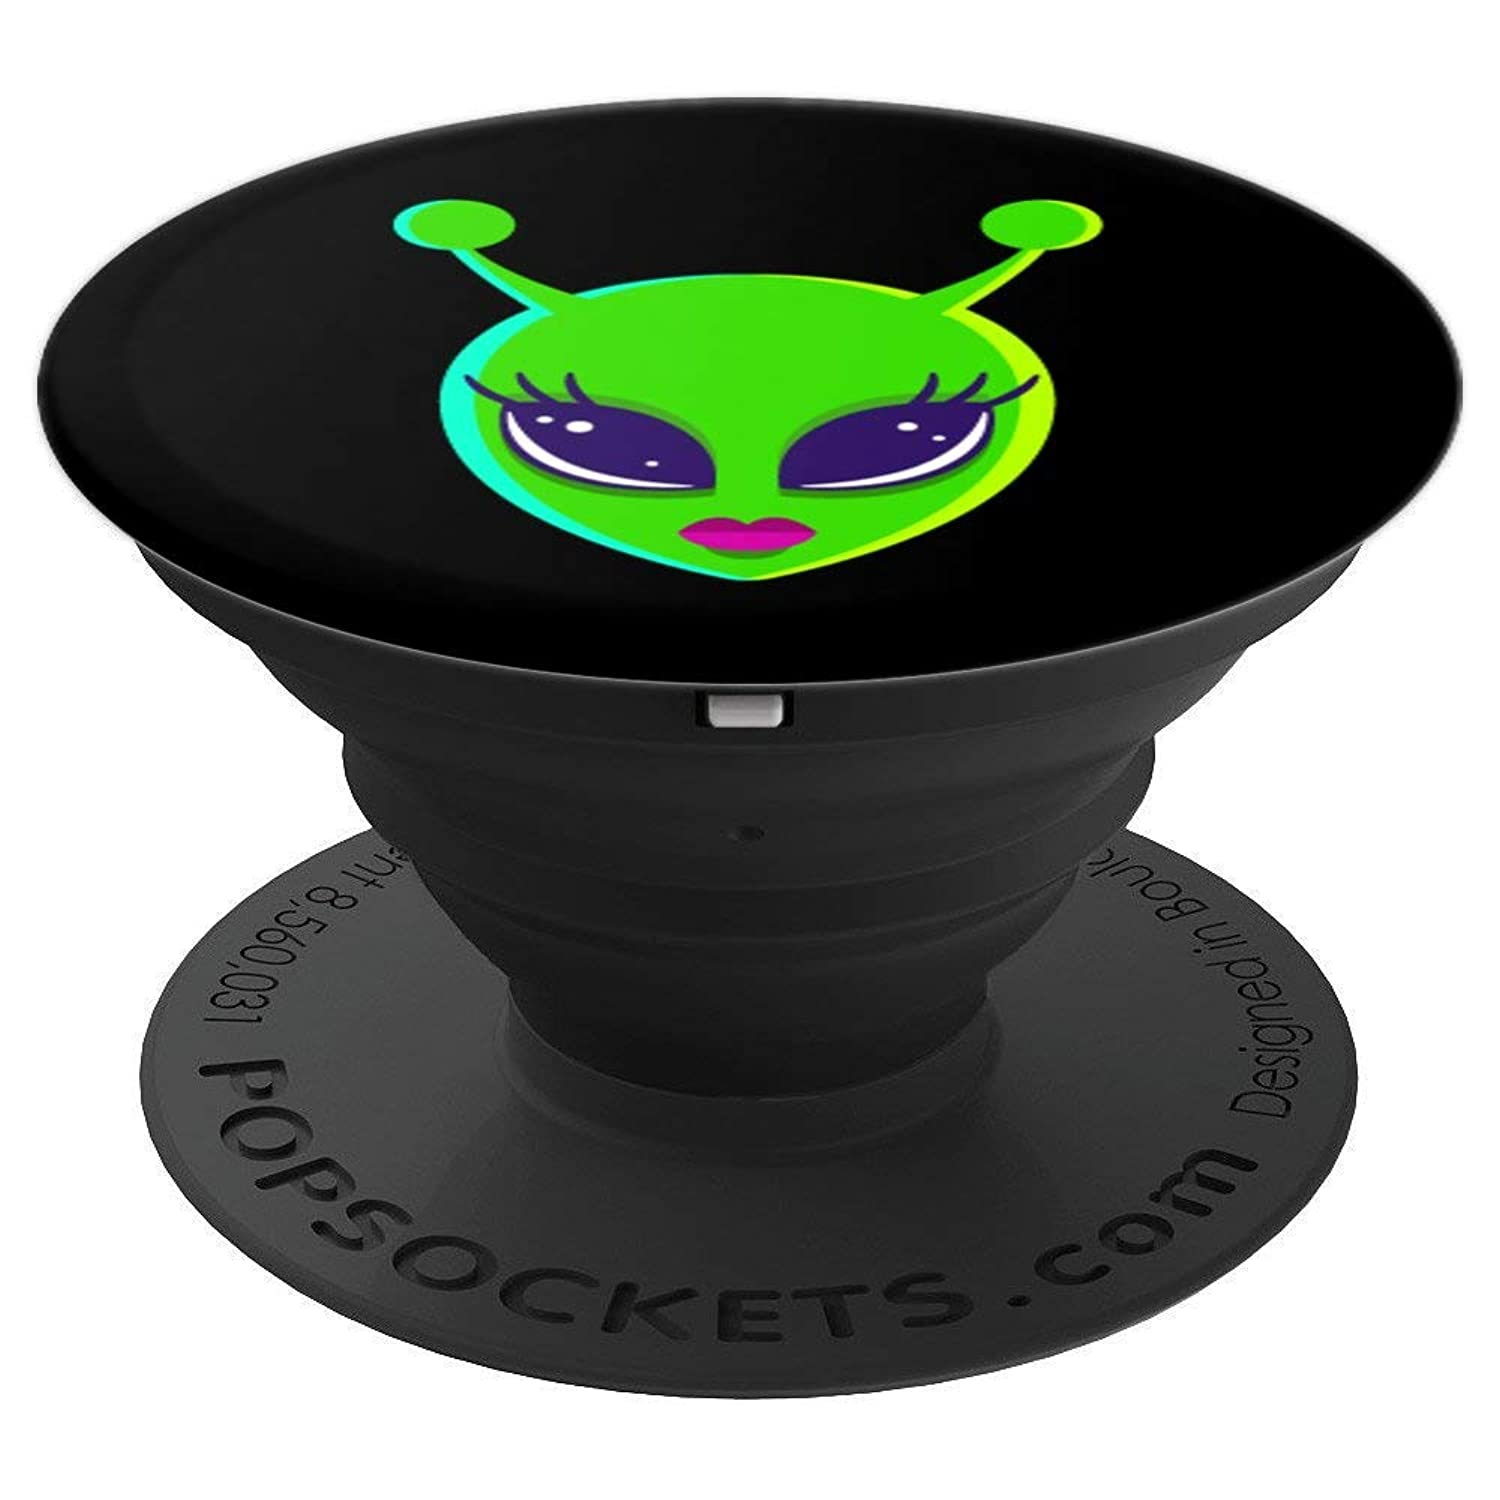 Alien Lady Babe Black Cute Space Galaxy Alien Lover Gift - PopSockets Grip and Stand for Phones and Tablets